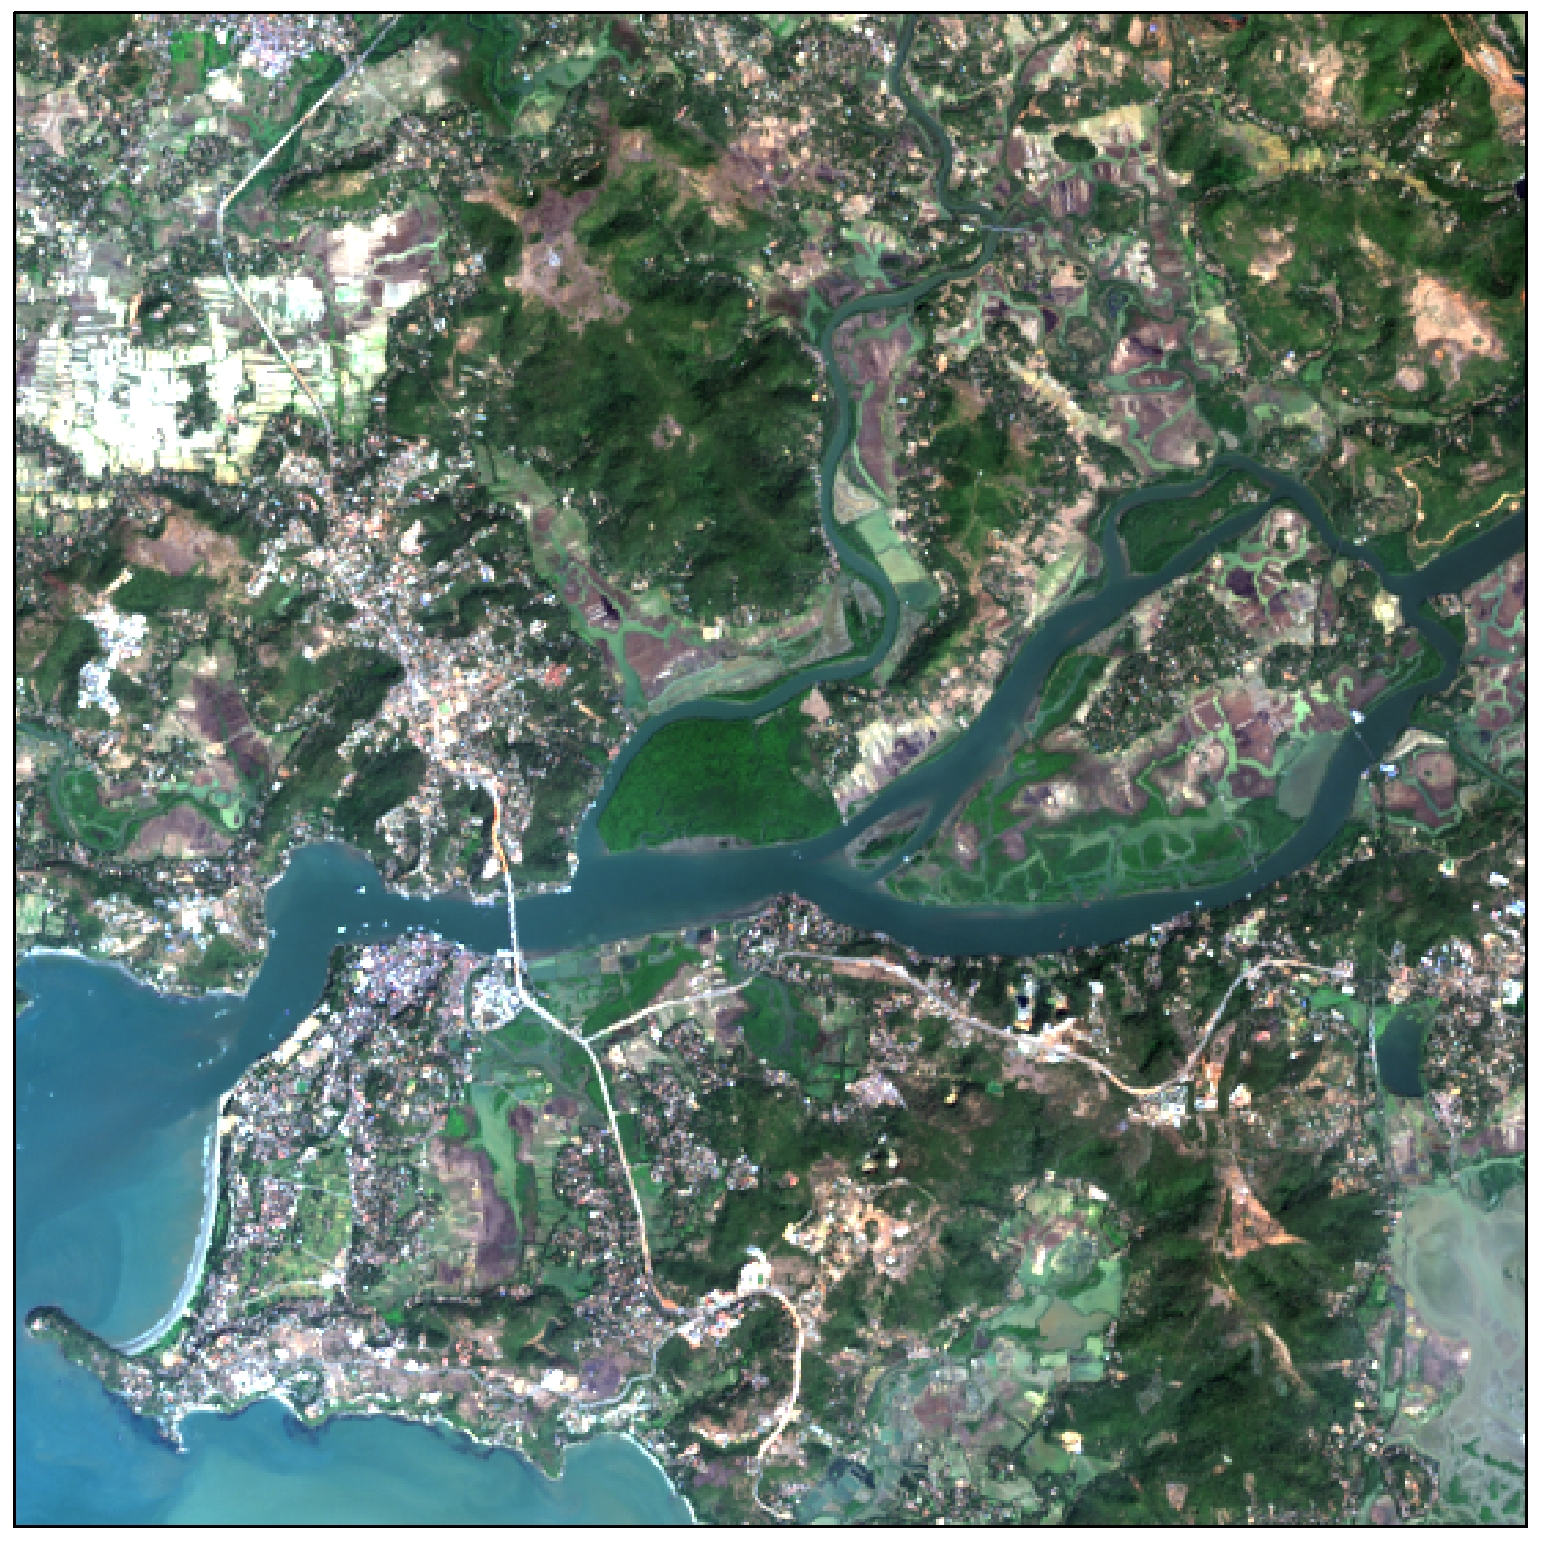 A true-colour composite image created using data from Landsat 8 bands 2, 3 and 4.